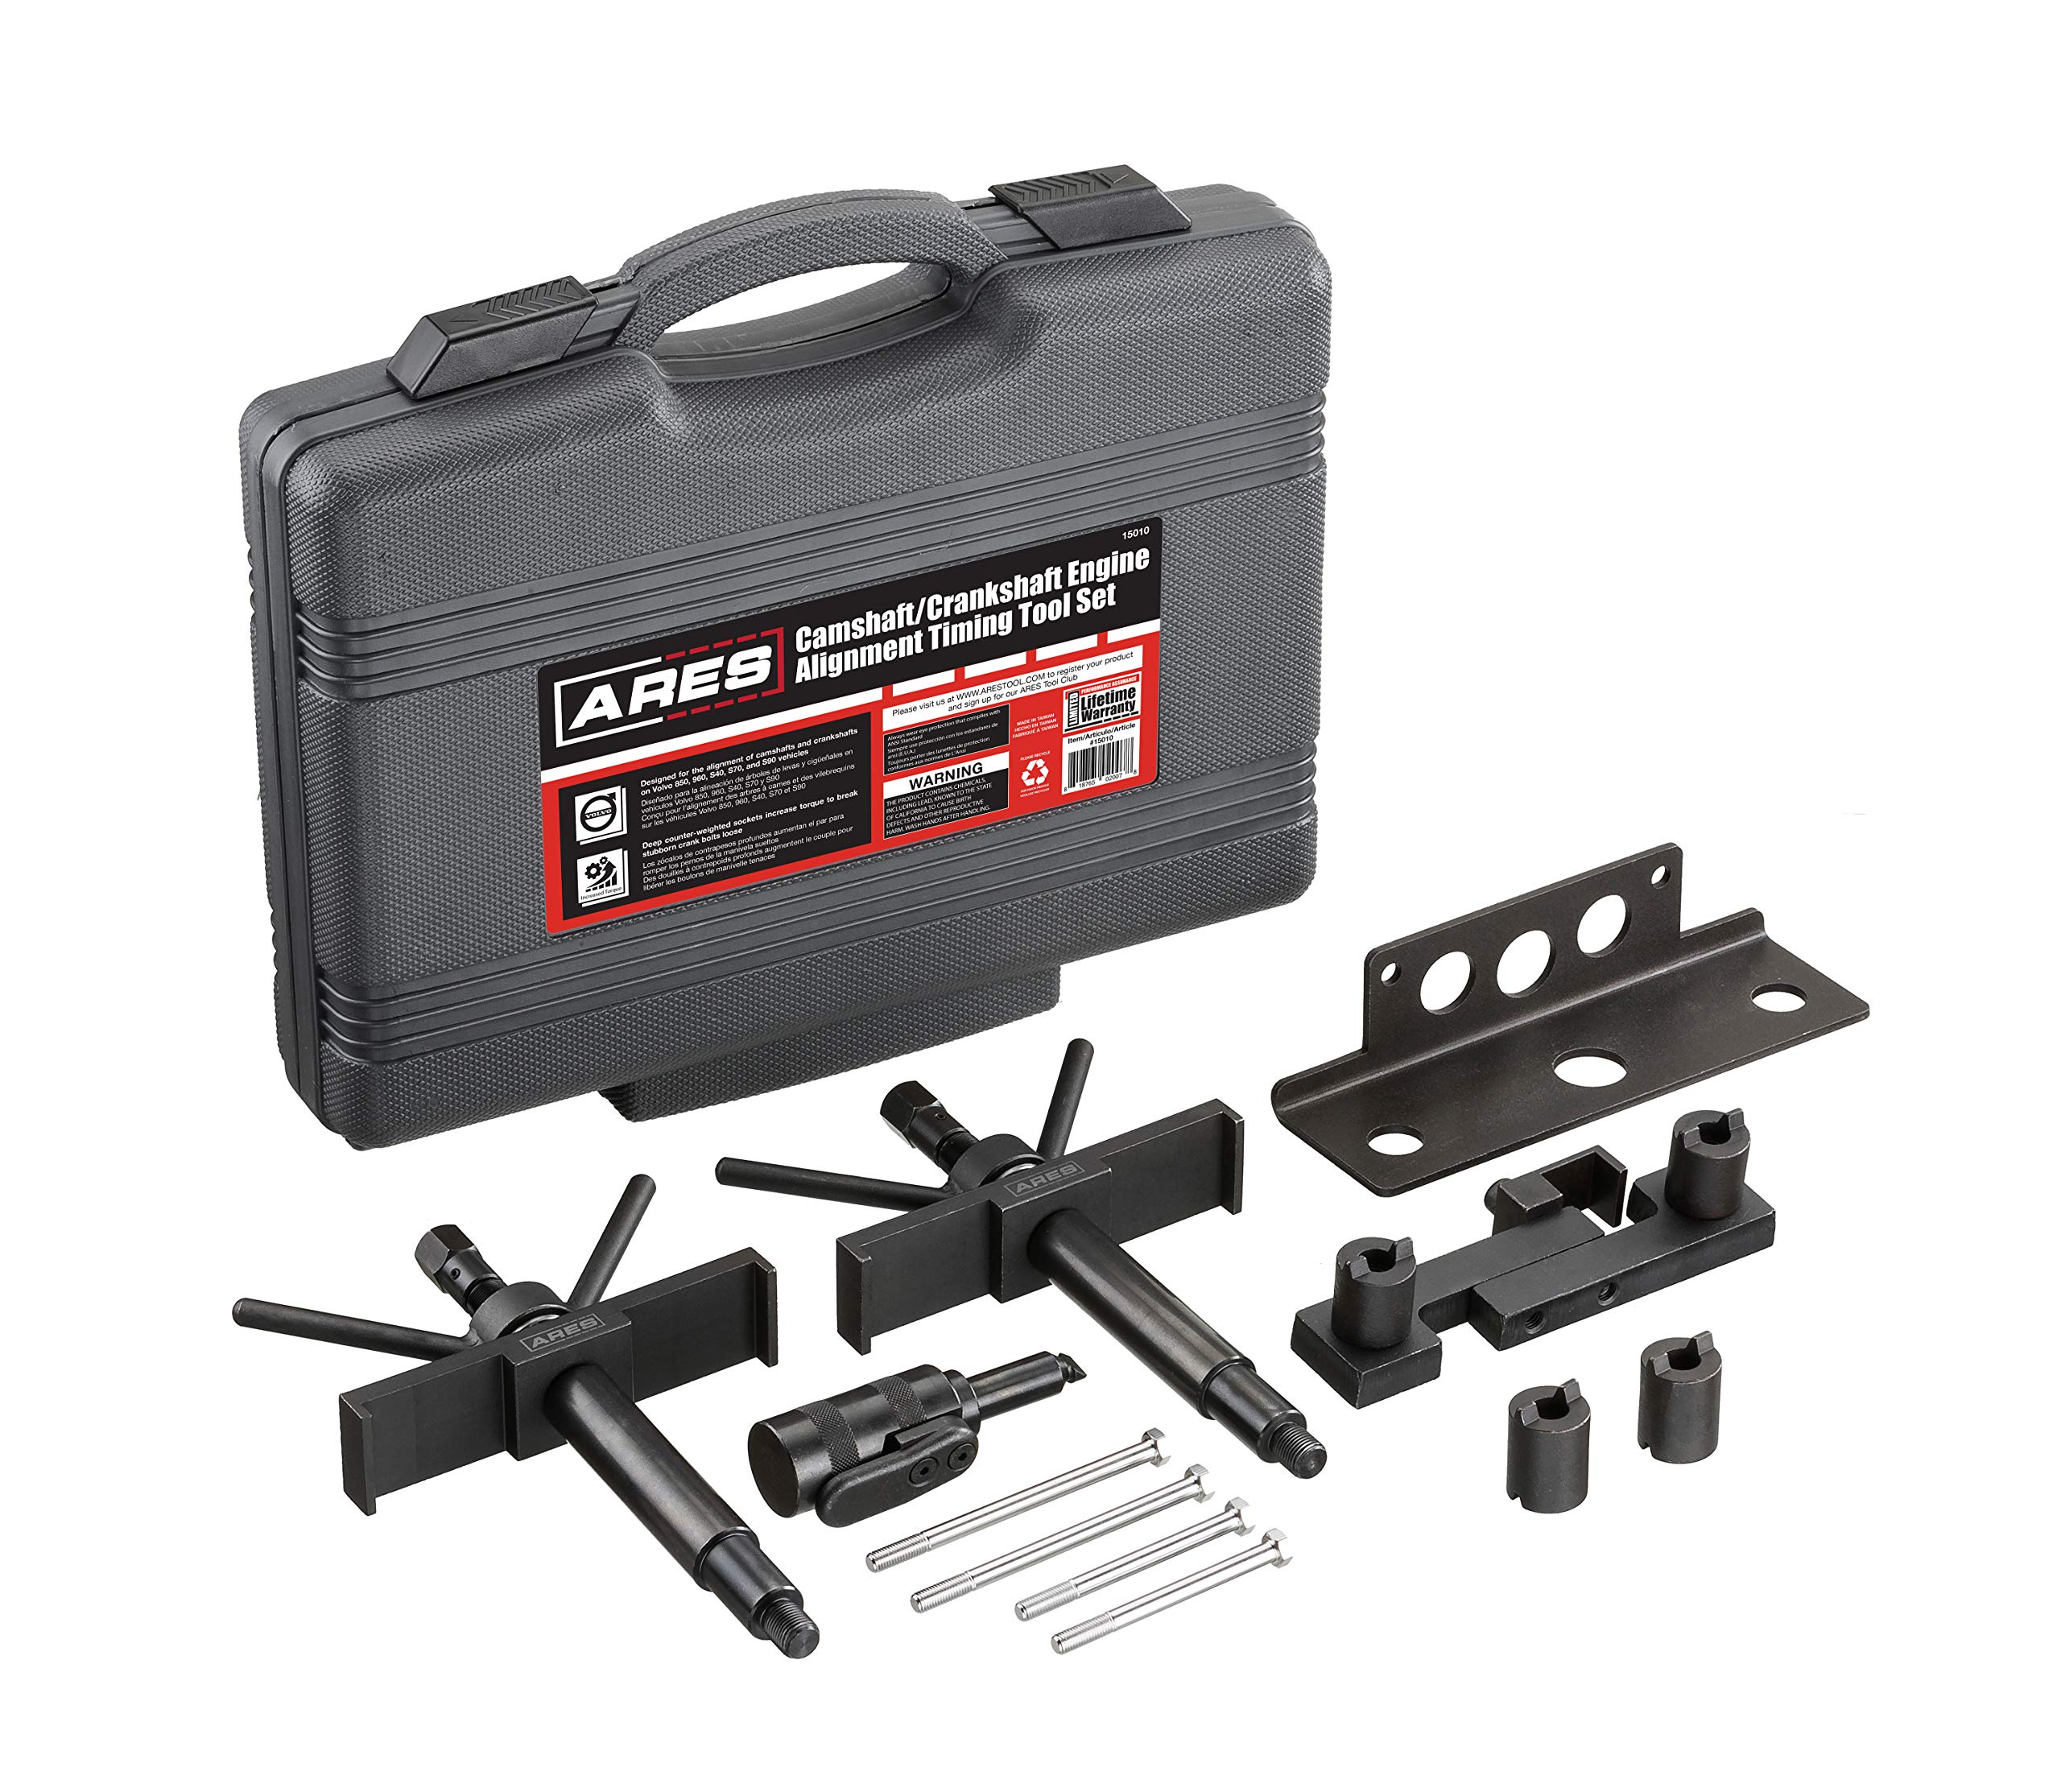 ARES 15010 - Camshaft, Crankshaft, and Timing Alignment Master Tool Set for Volvo - Deep Counter-Weighted Sockets for Increased Torque - Correctly Install Camshafts with Cam Cover